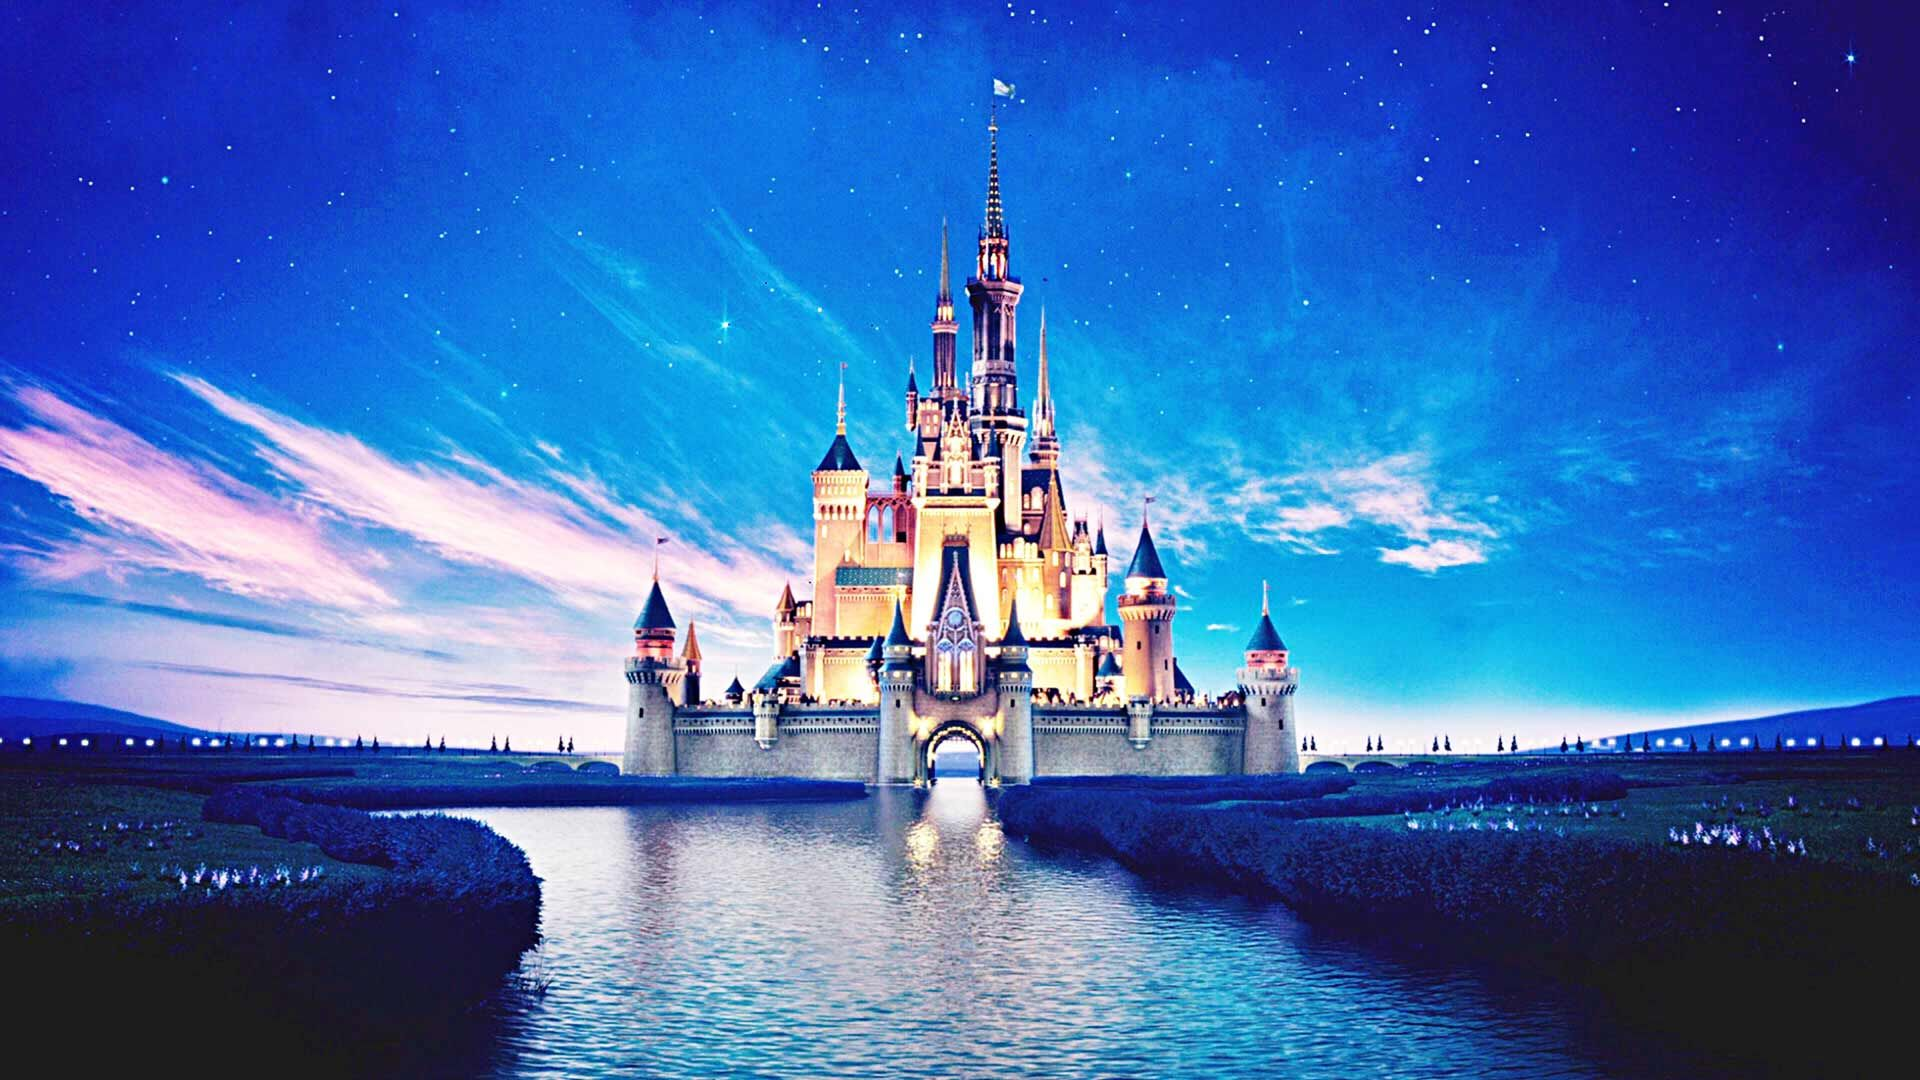 Why I Still Love Disney Even In College Disney Background Disney Desktop Wallpaper Castle Pictures